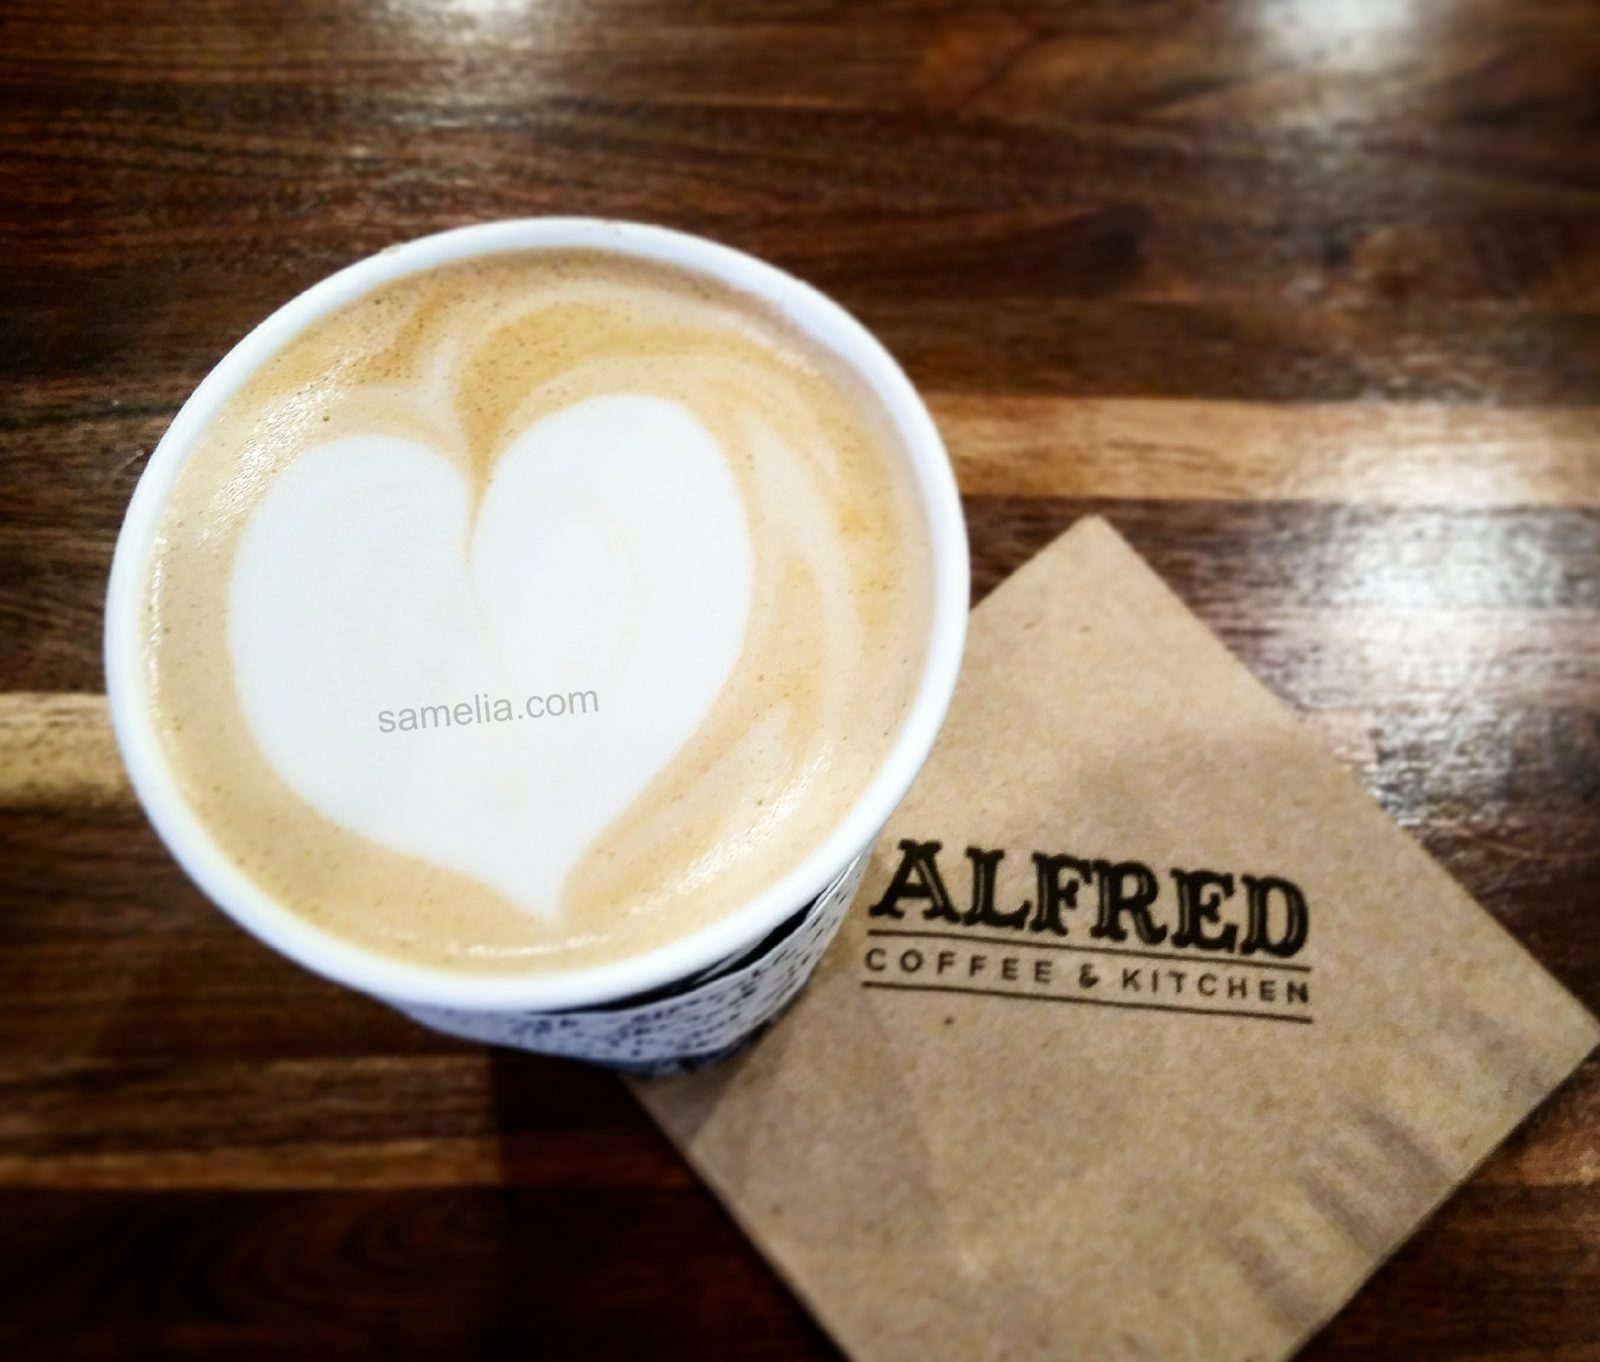 Alfred coffee & kitchen, samelia, love, love life